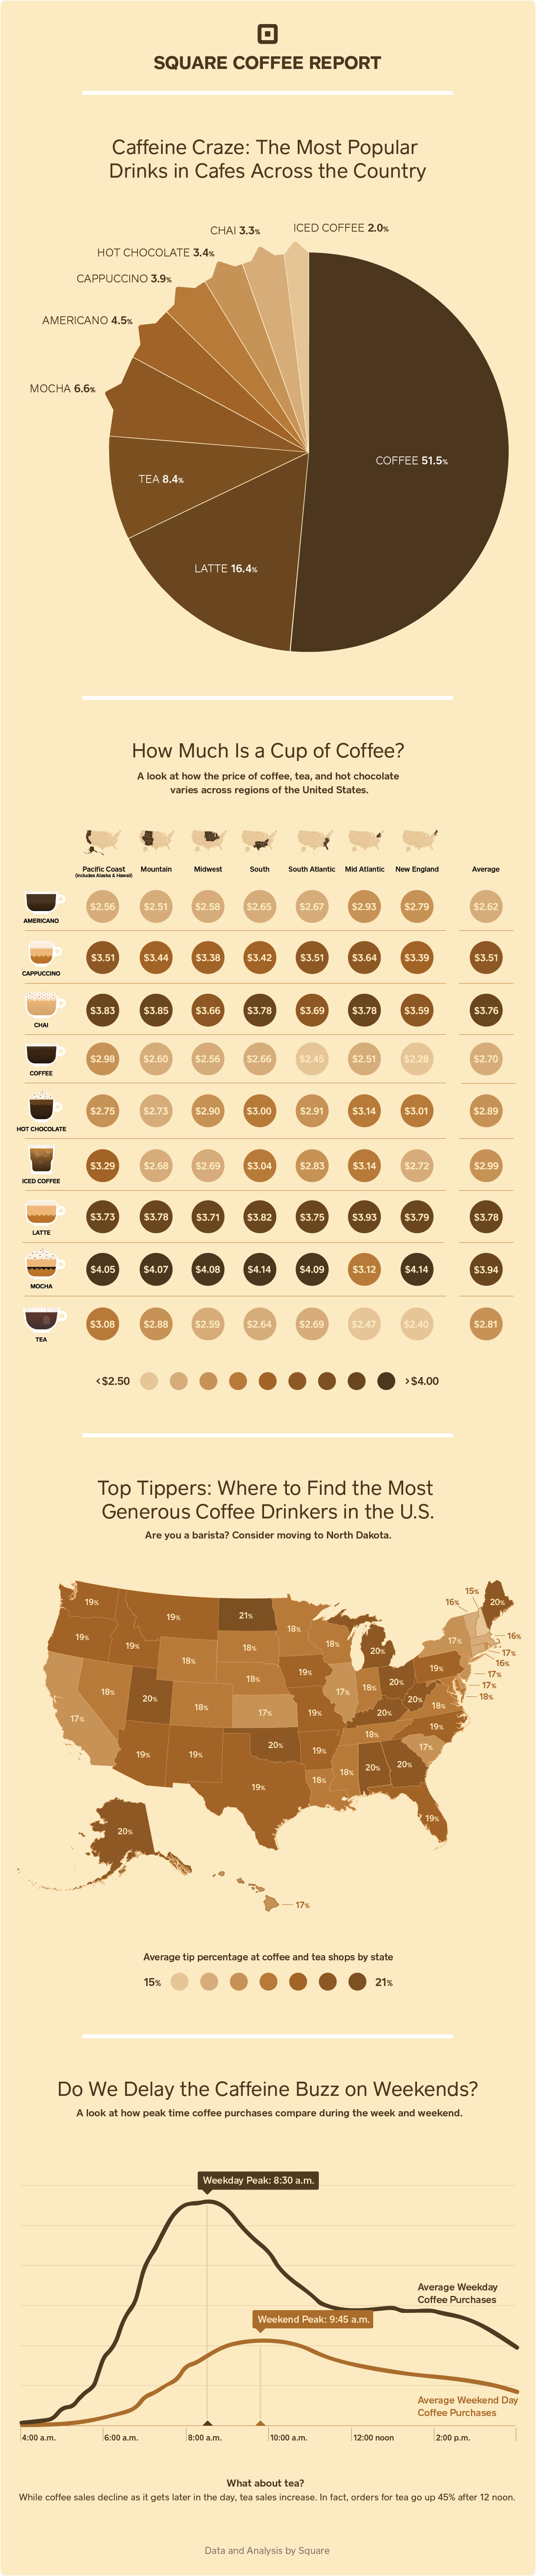 Coffee data, state by state.